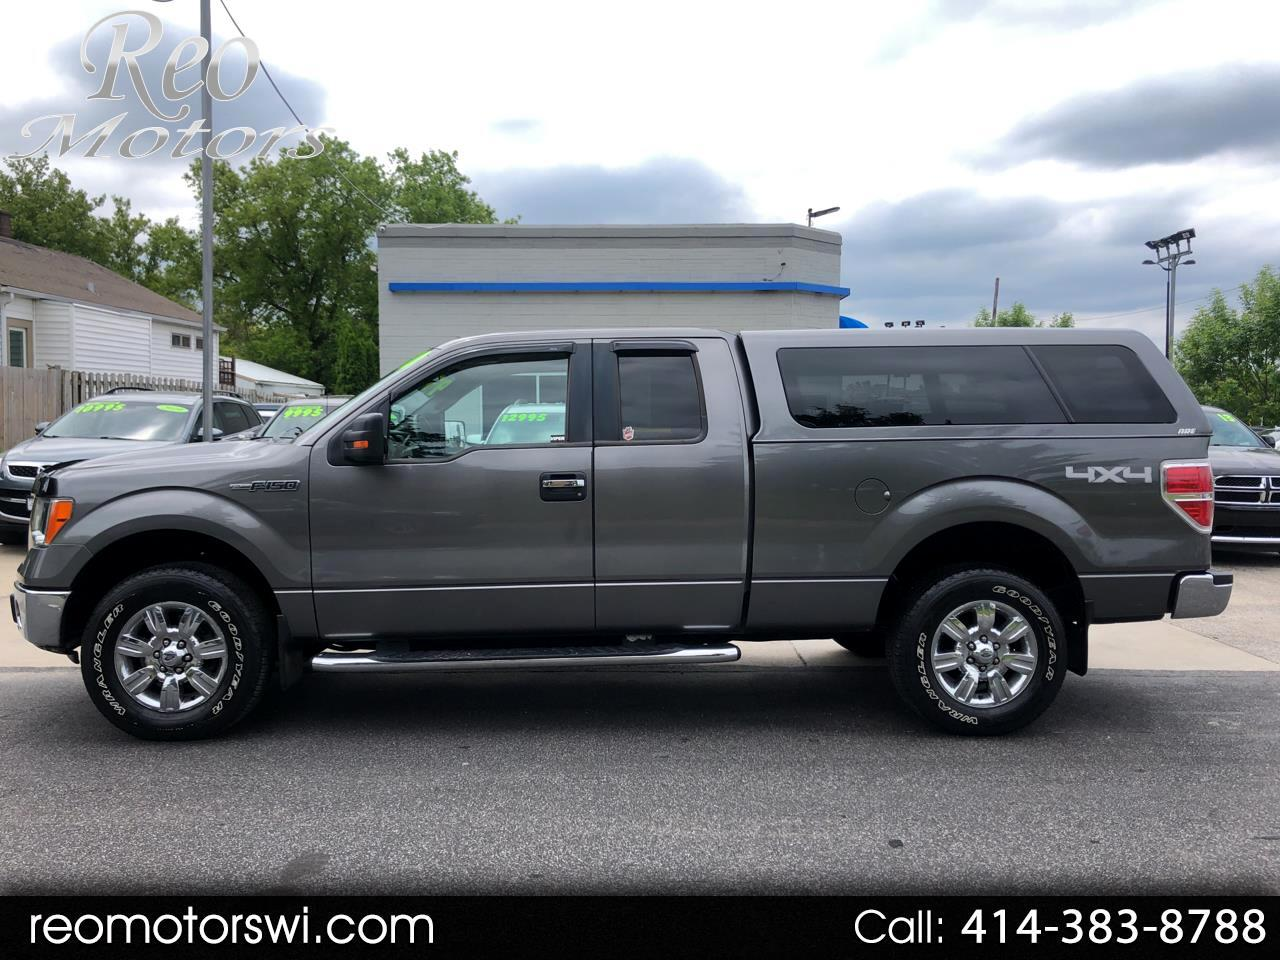 Used 2010 Ford F-150 for Sale in Milwaukee, WI 53215 Reo Motors